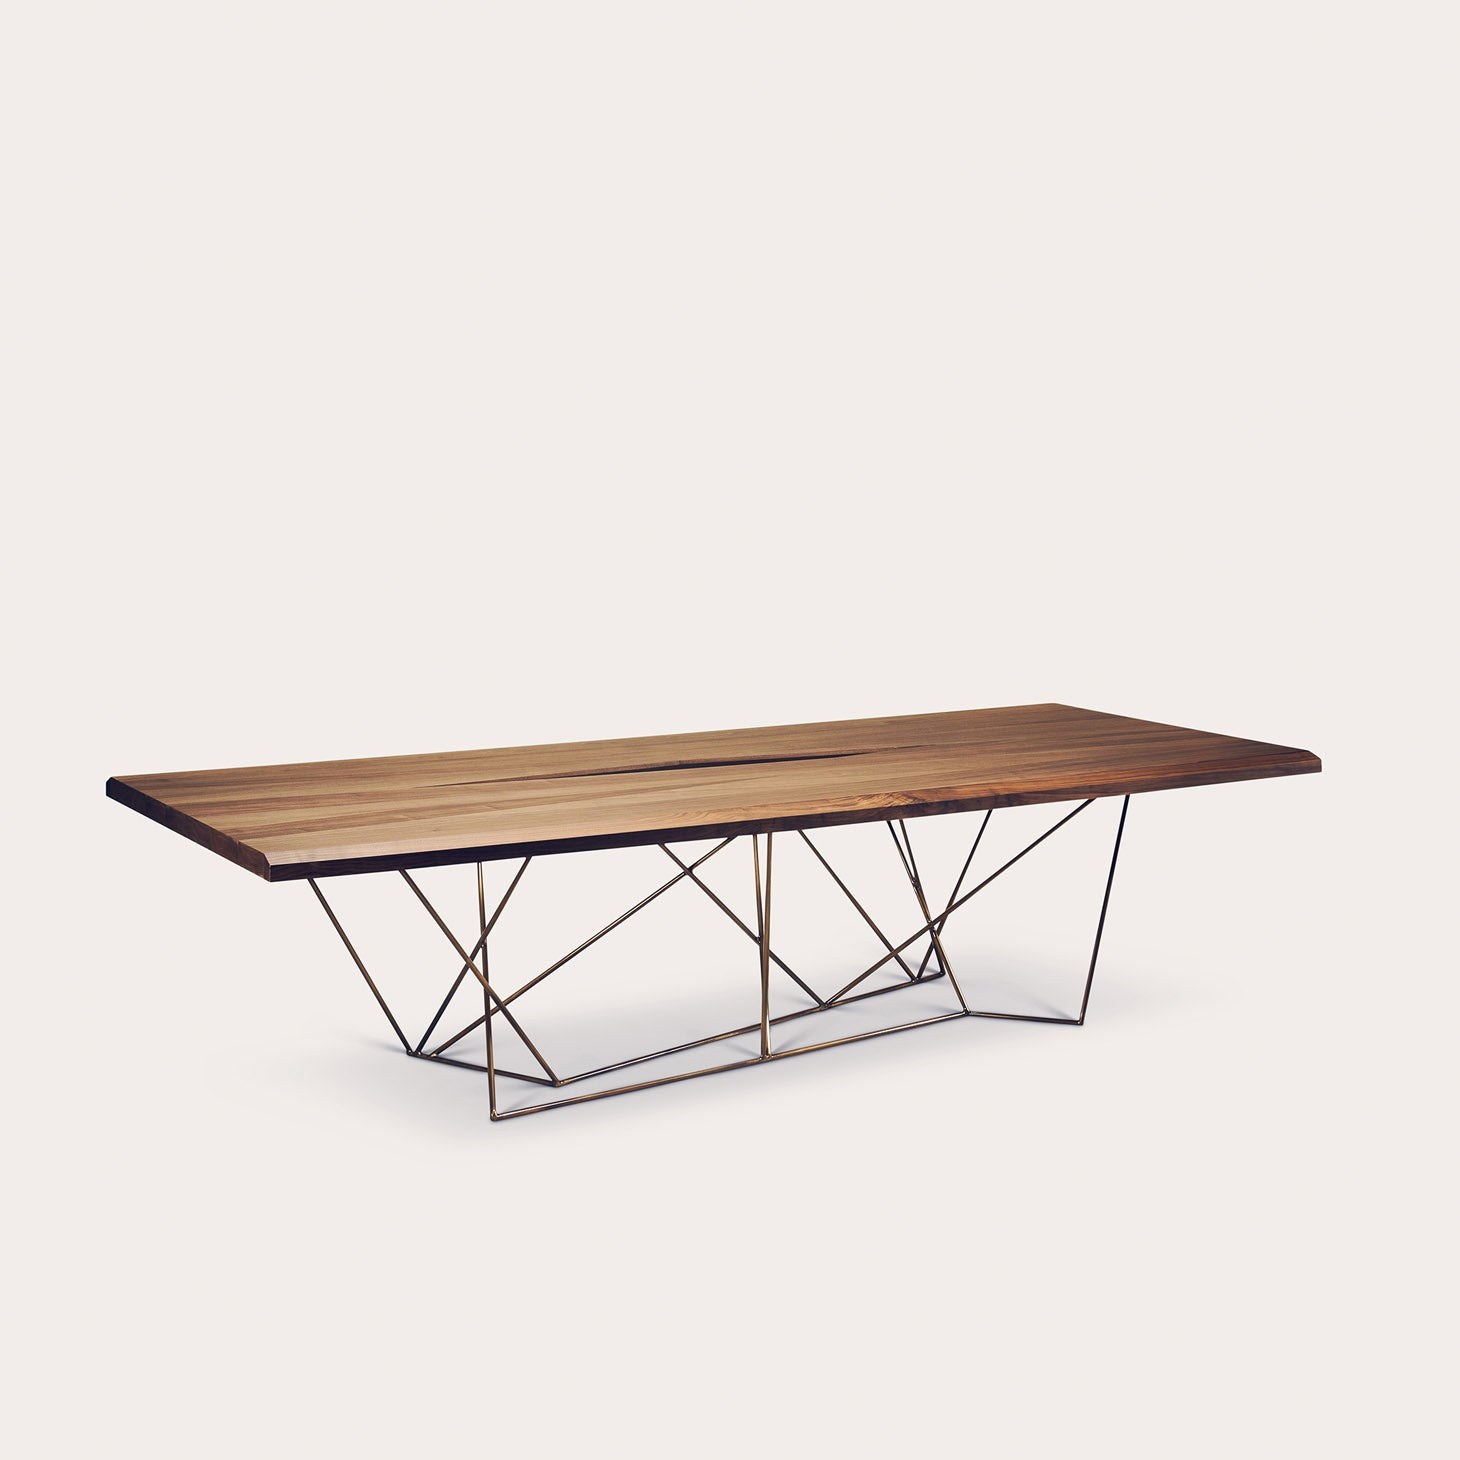 ASAN Dining Table Tables Bruno Moinard Designer Furniture Sku: 773-230-10006